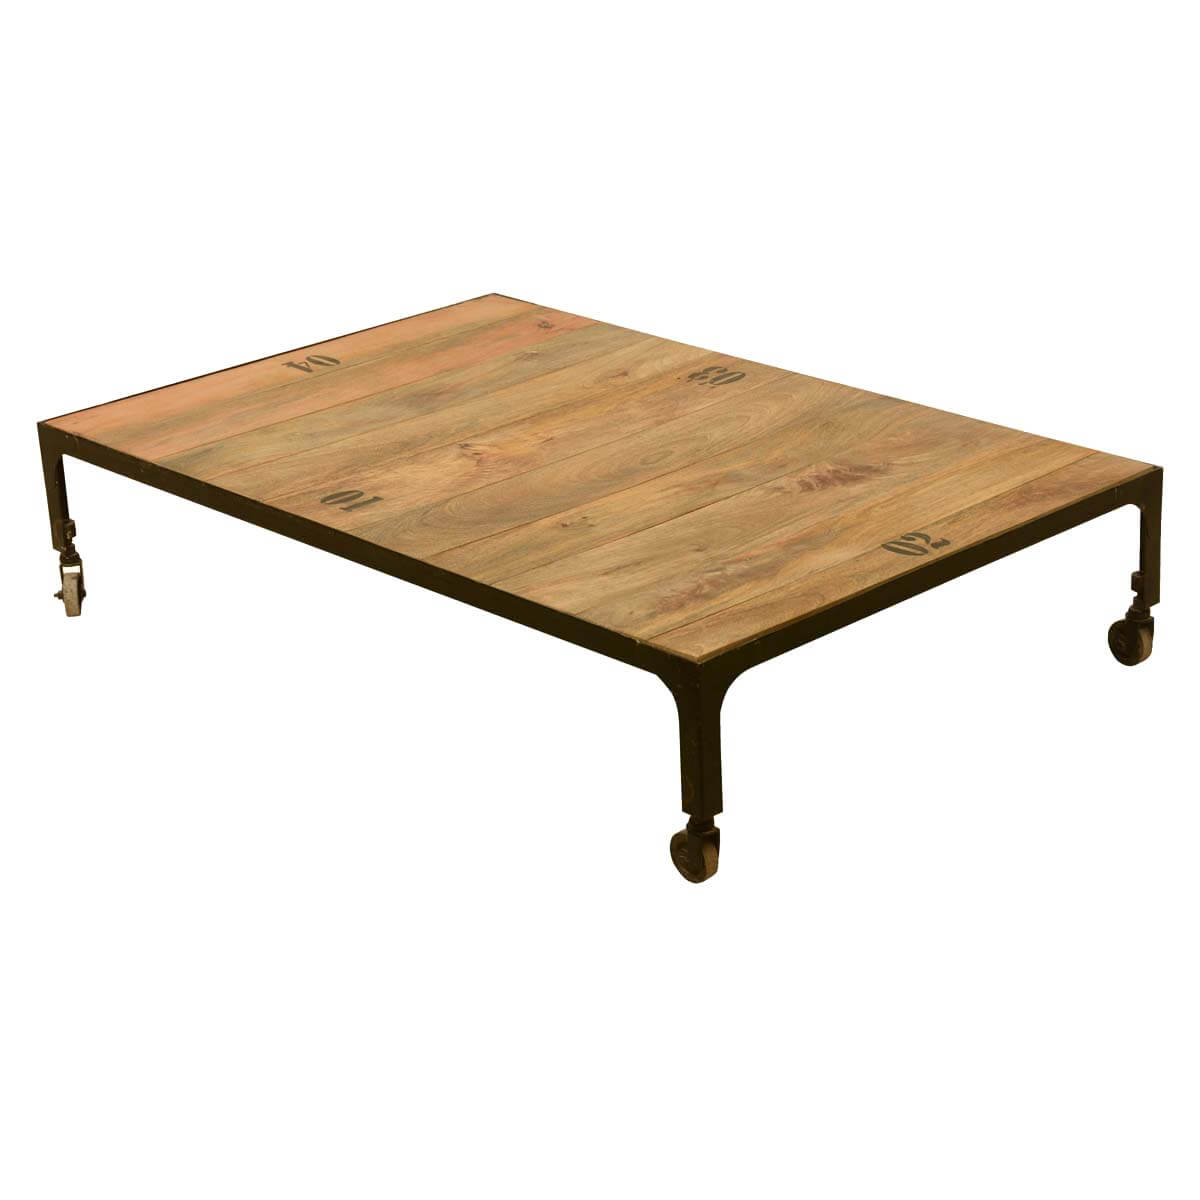 Industrial Fusion Solid Wood Iron Rustic Rolling Cart Coffee Table